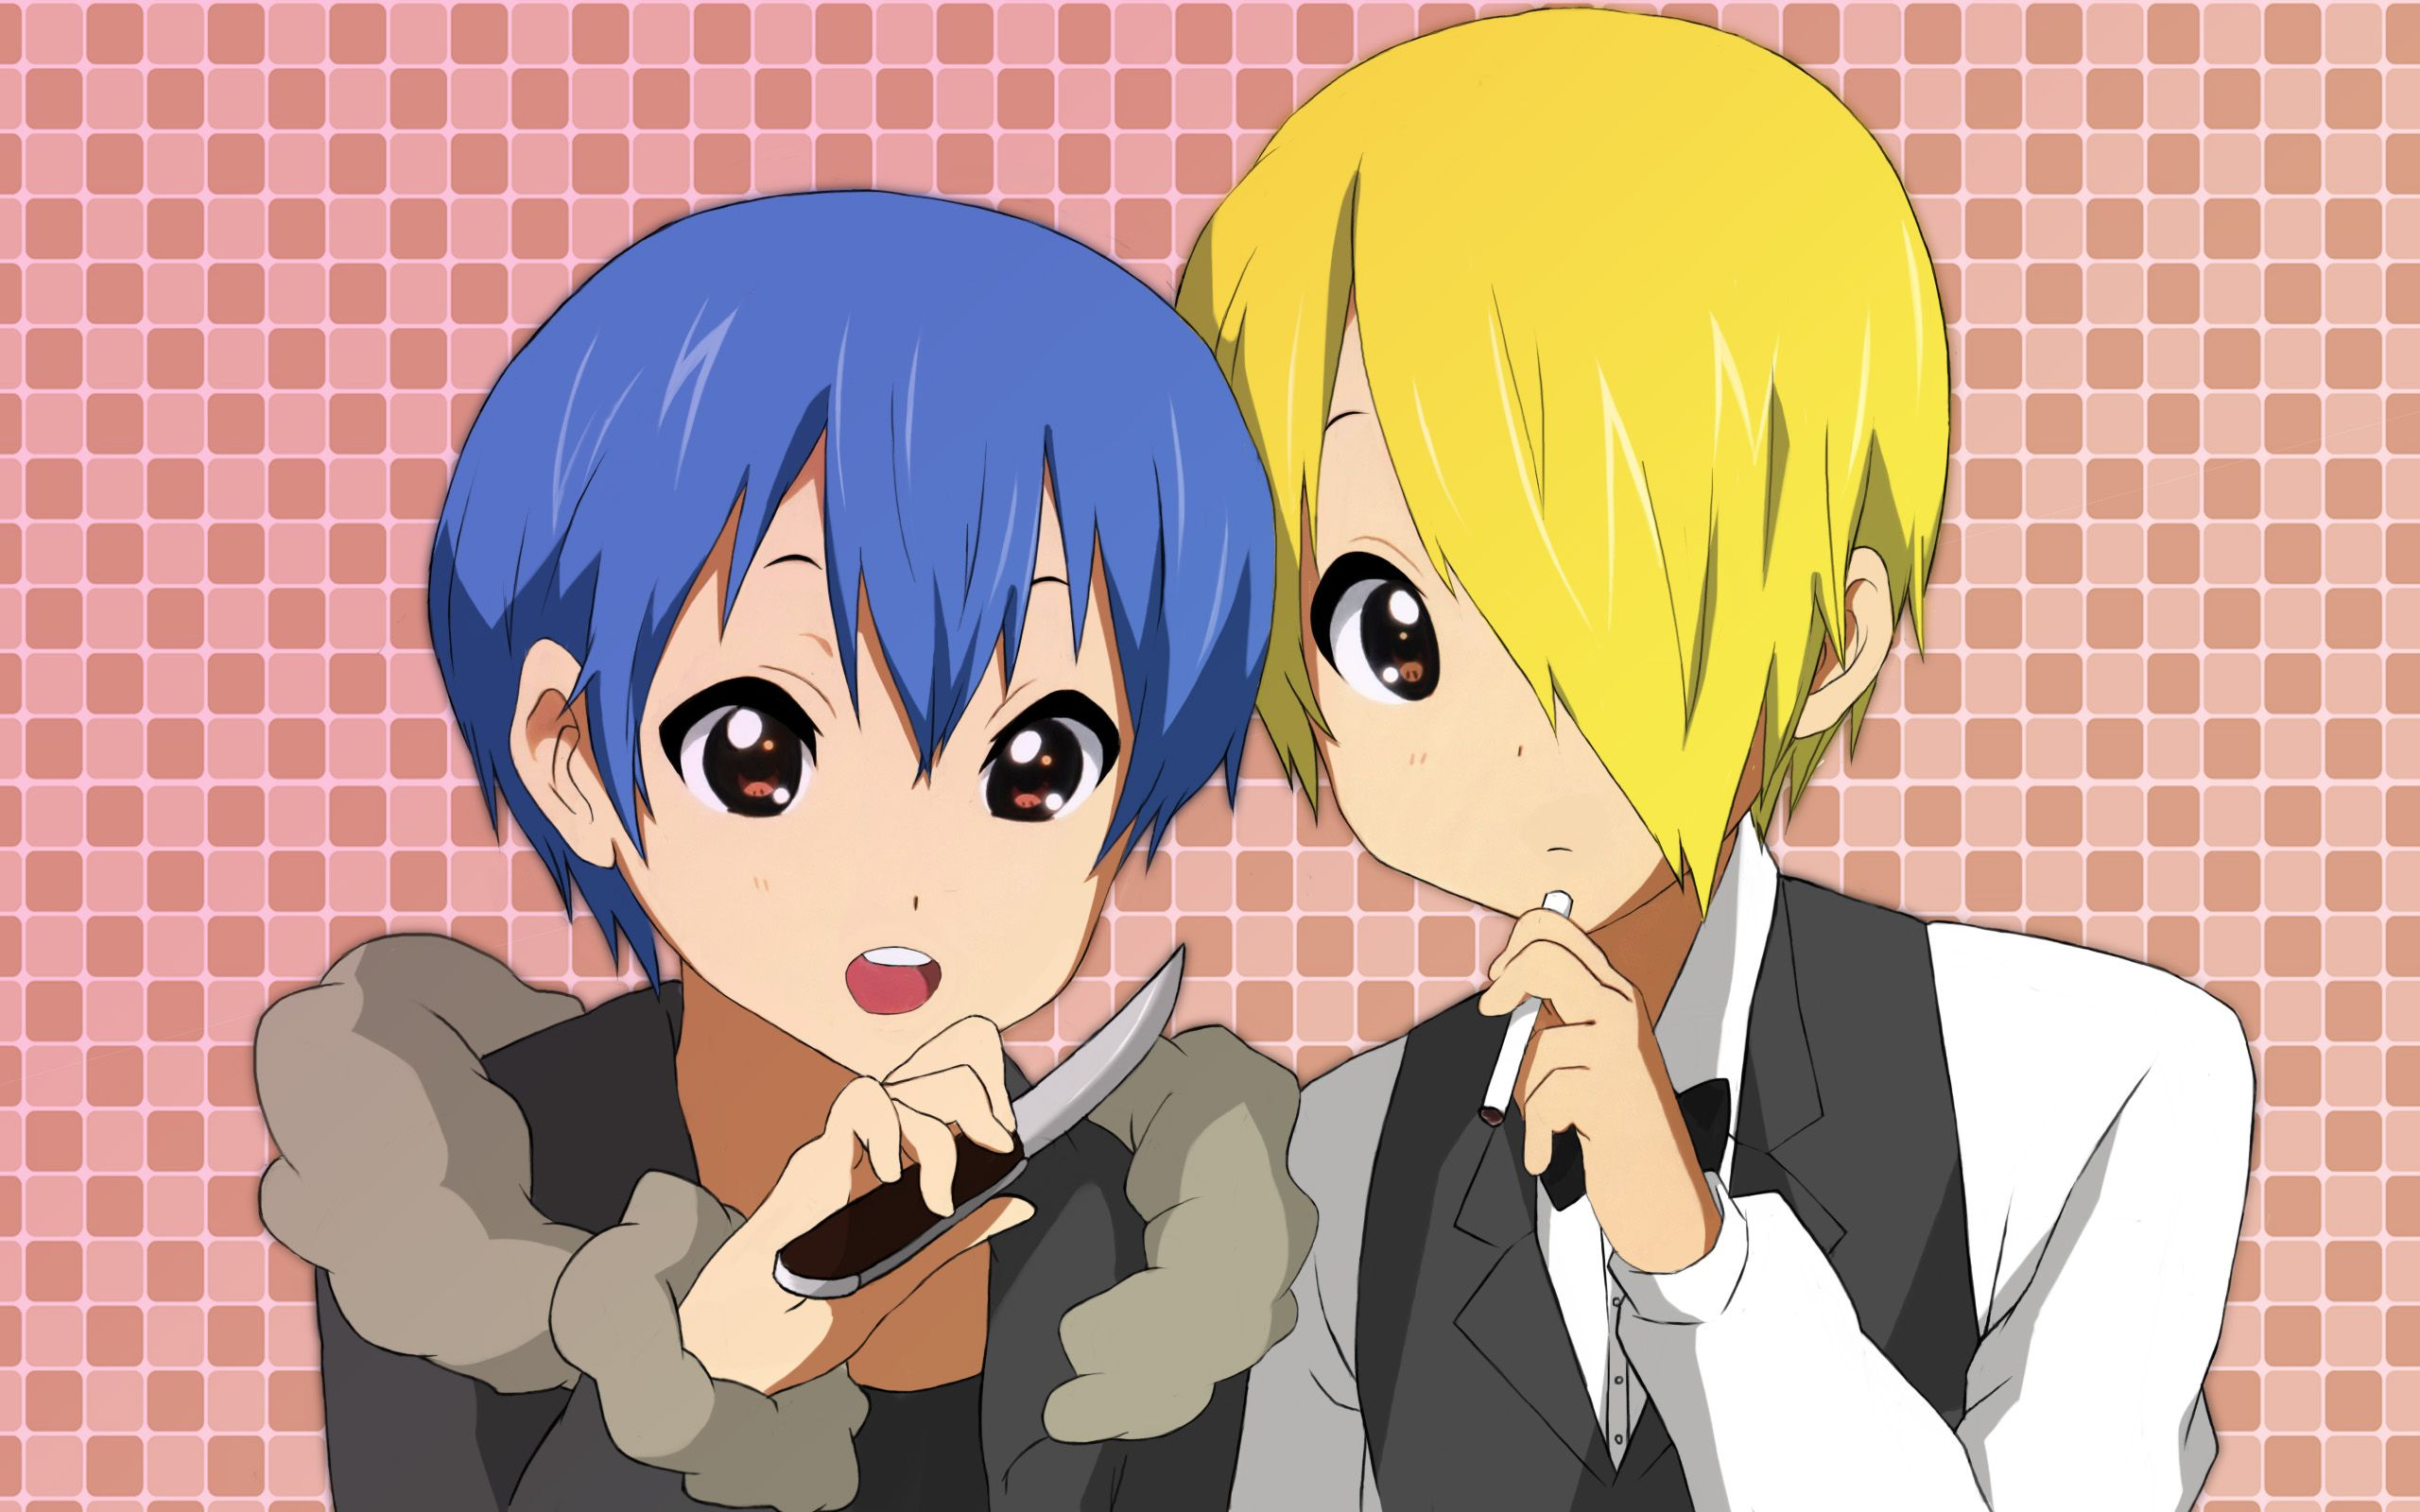 SOUMA AND SATOU AS IZAYA AND SHIZUO. THEY ALSO HAVE THE